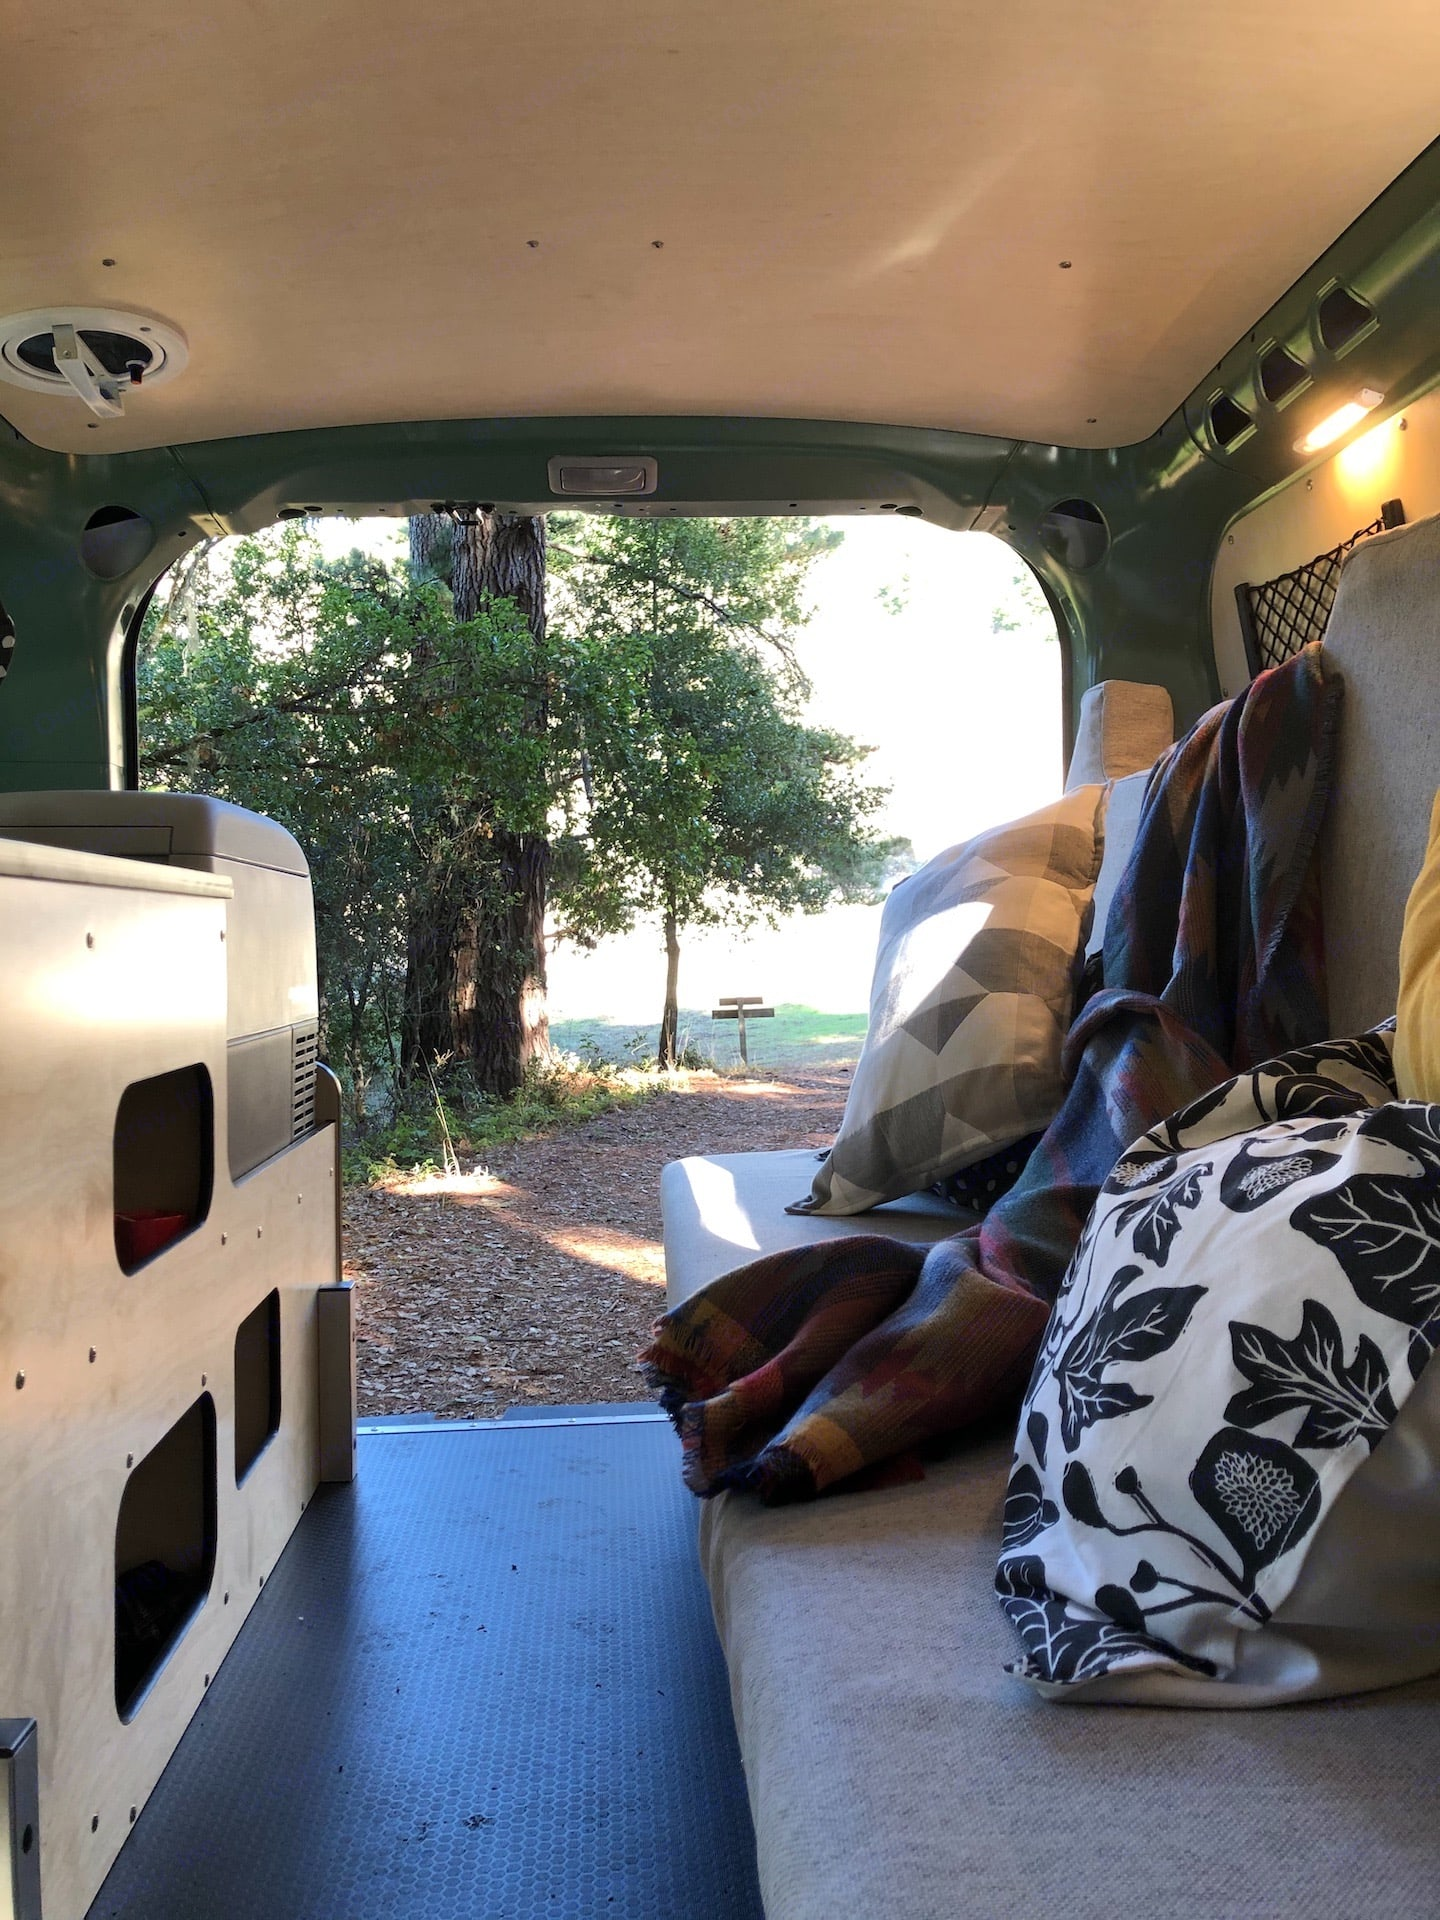 Bed folds into a bench during the day.  In addition the storage under the bench, there are cubbies under the counter for storage.. Ram ProMaster City 2019